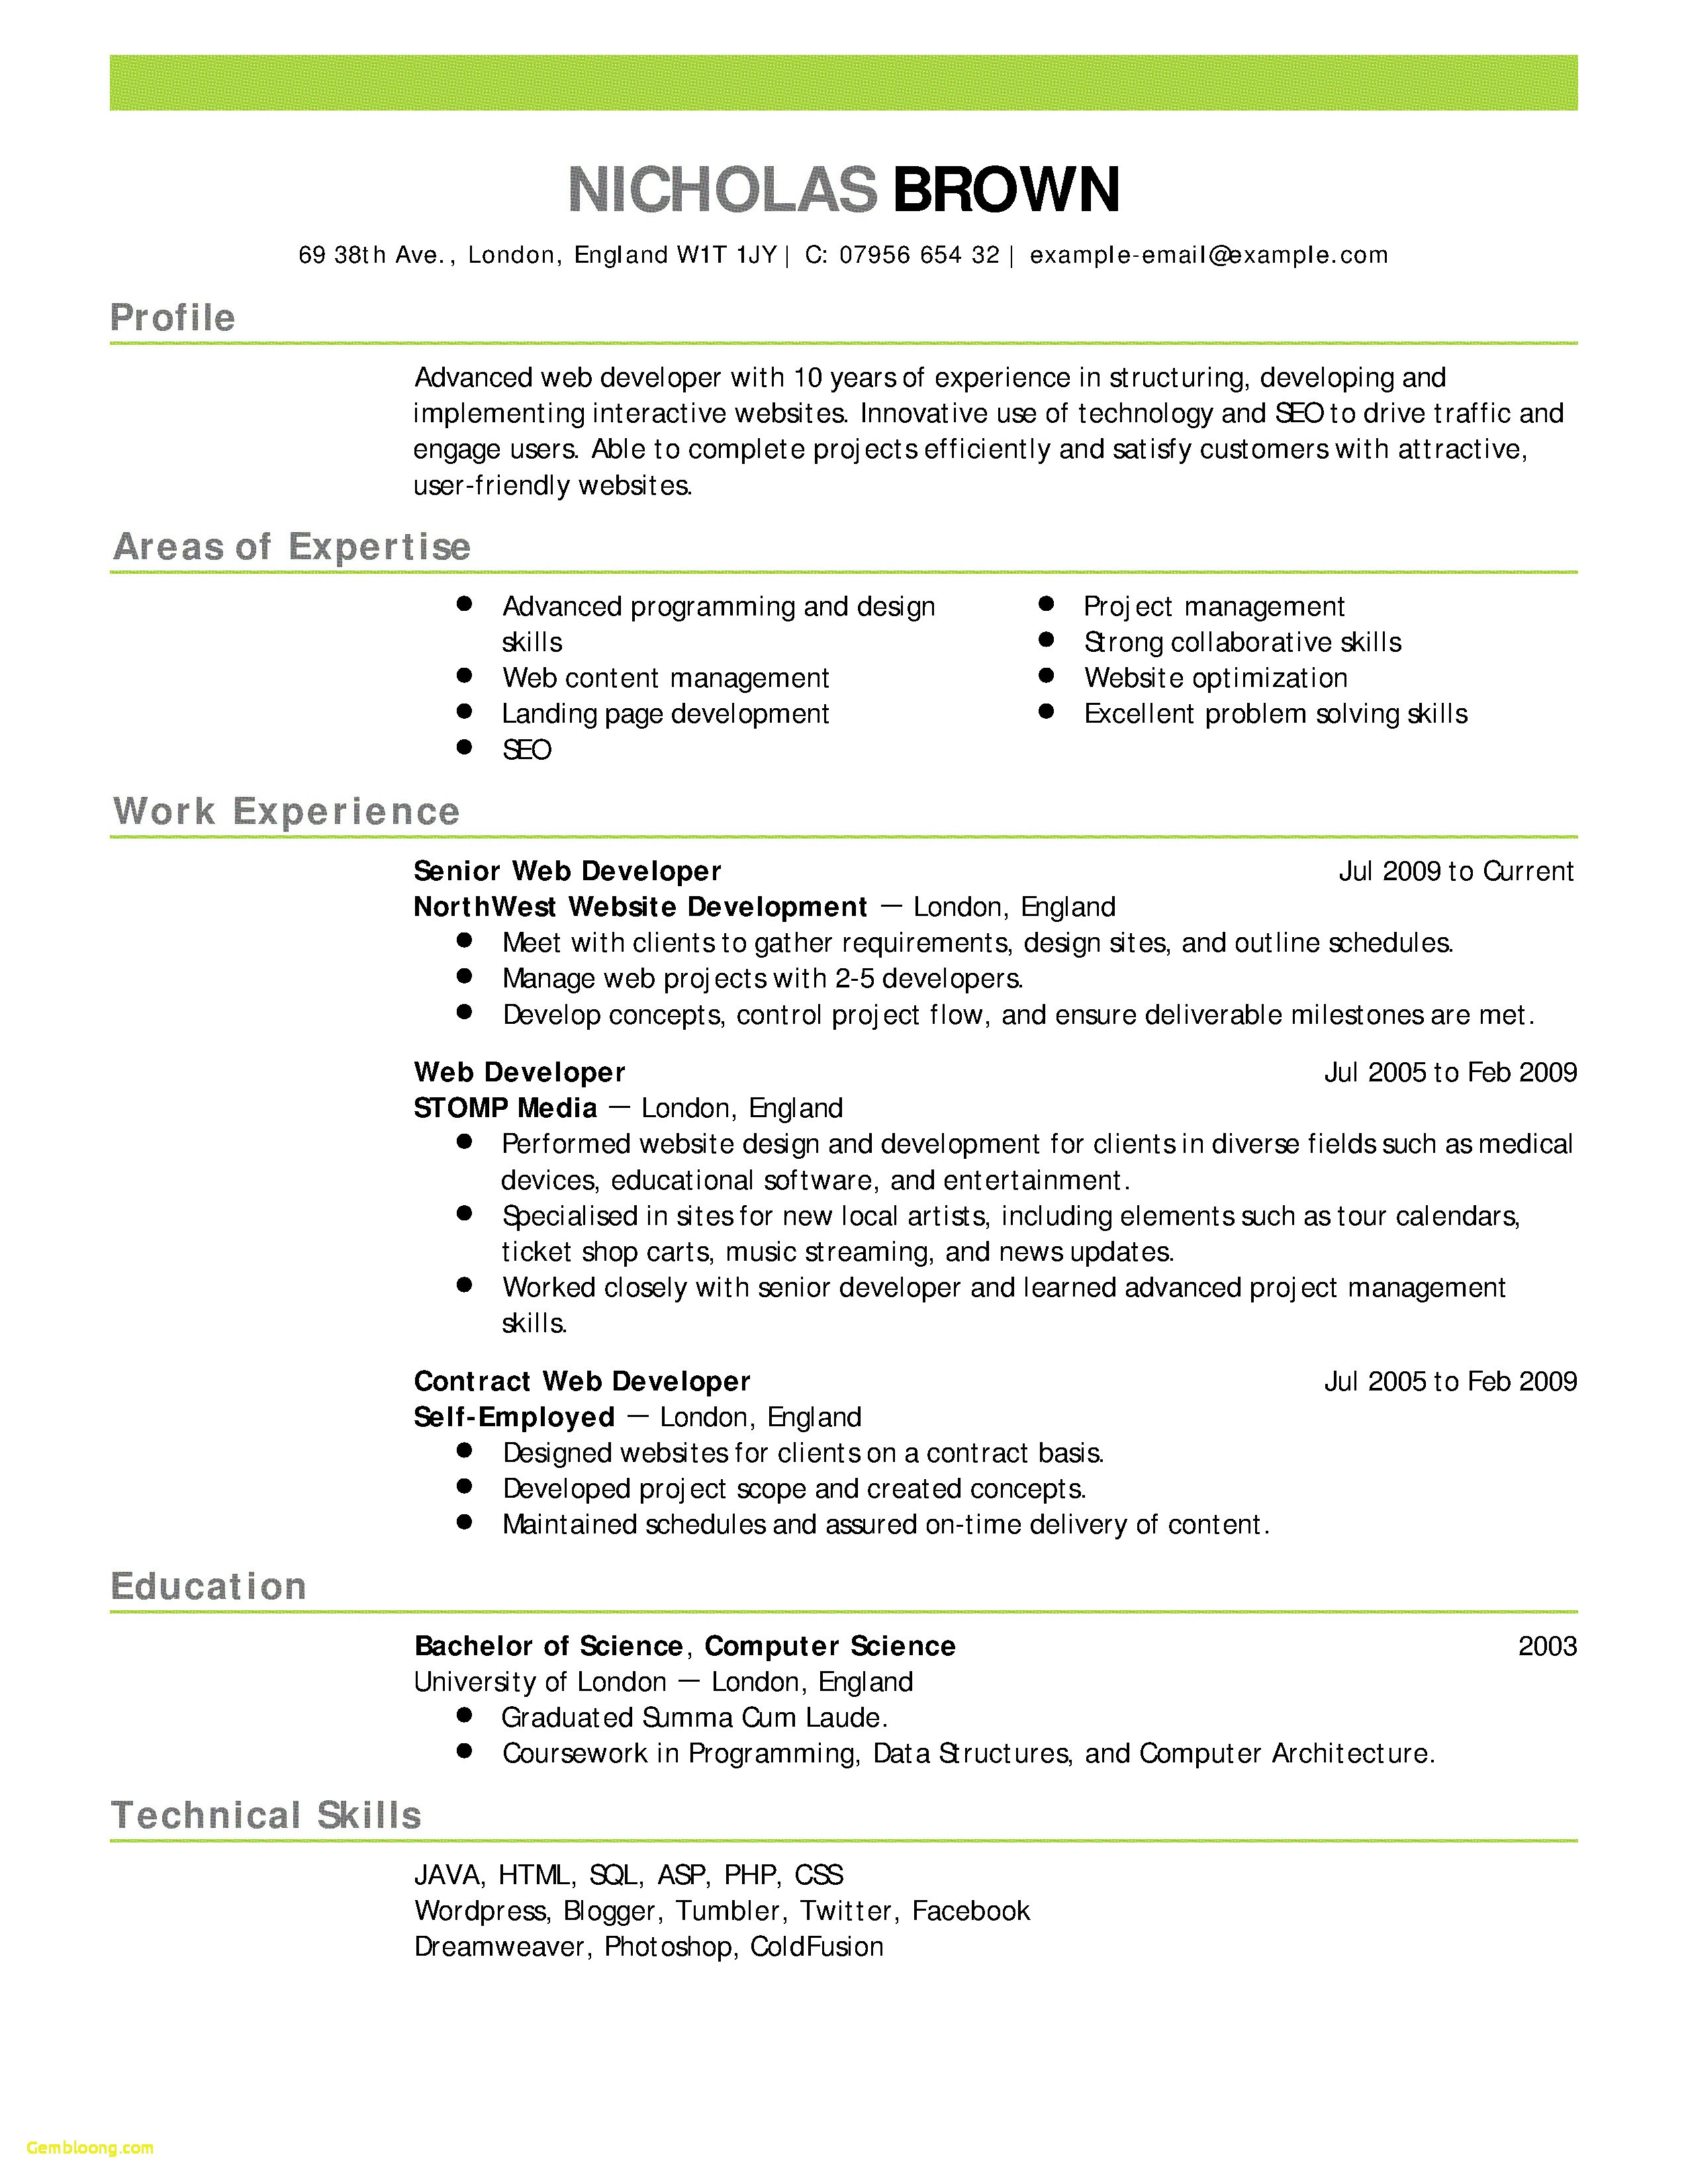 Pharmacist Resume Template - Free Word Template Downloads New Design Pharmacist Cv Template